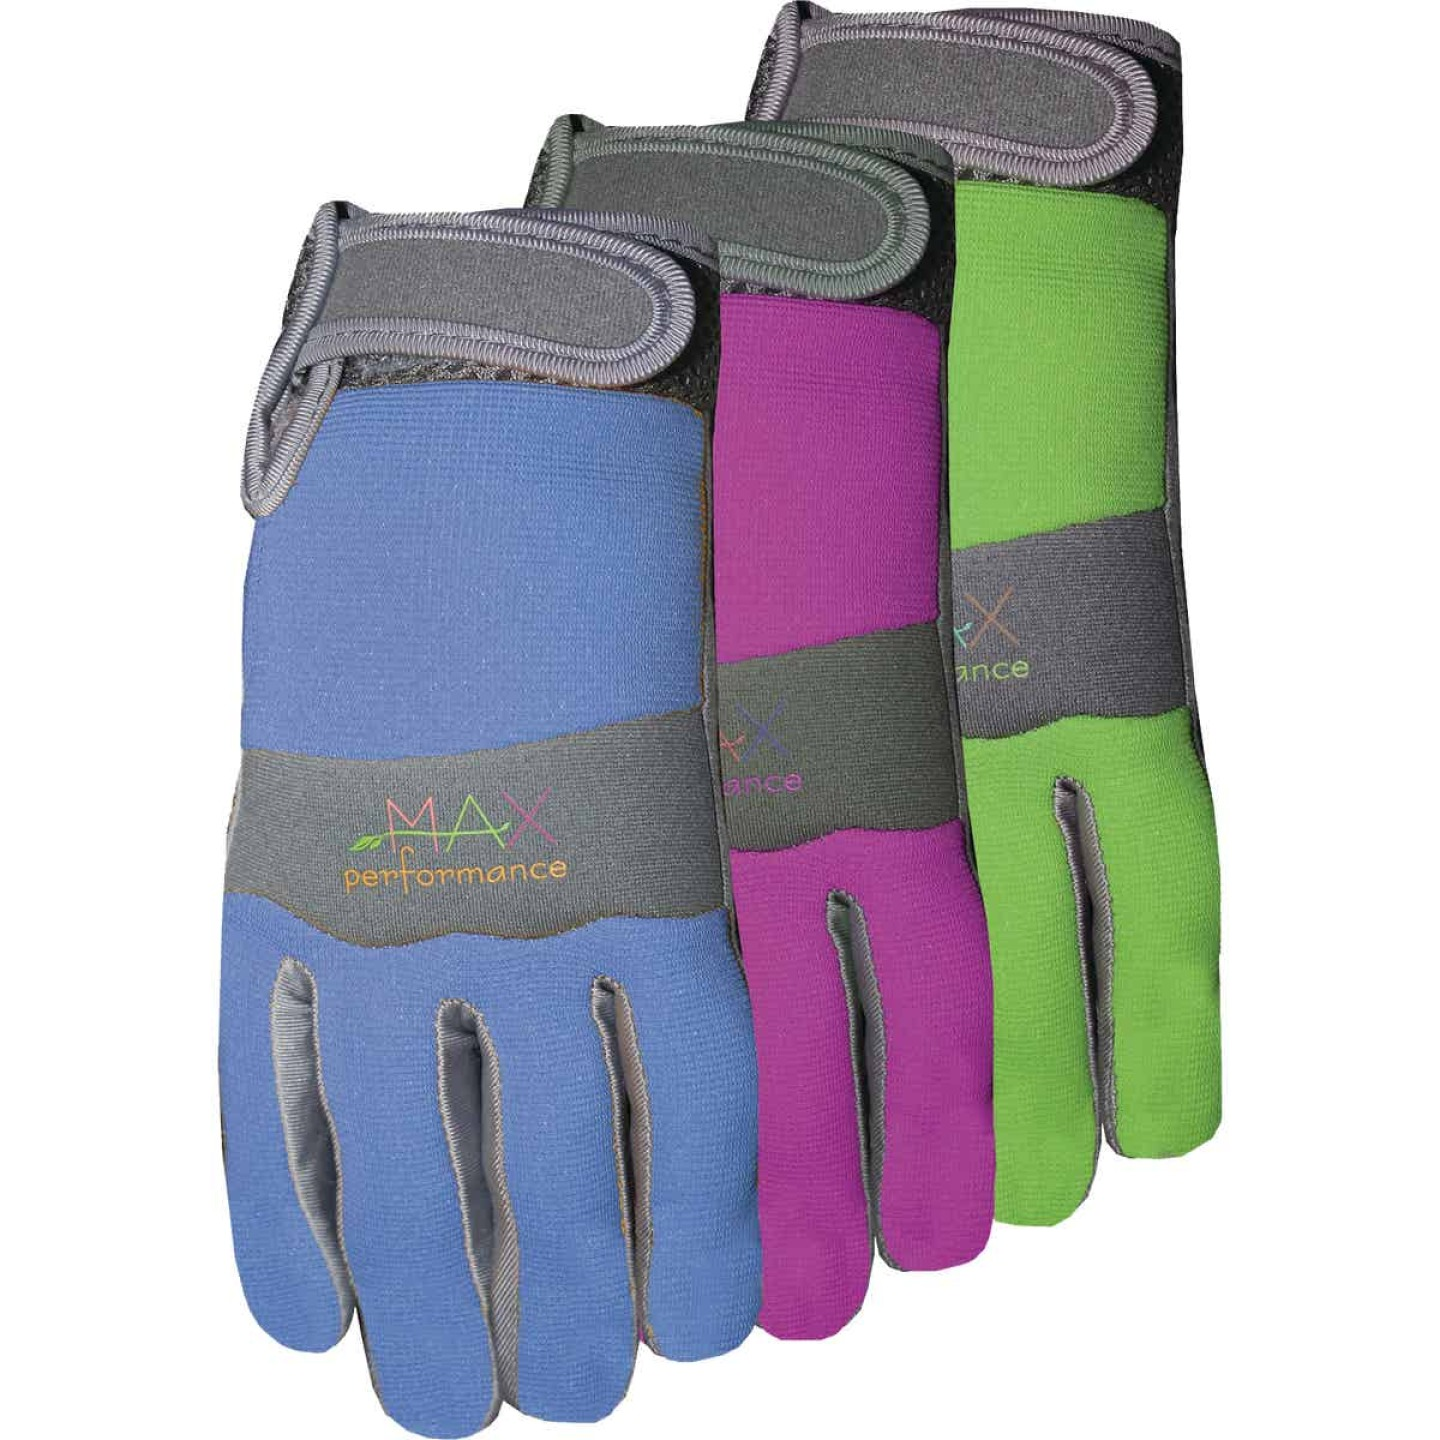 Midwest Gloves & Gear Women's Medium Neoprene Garden Glove Image 1